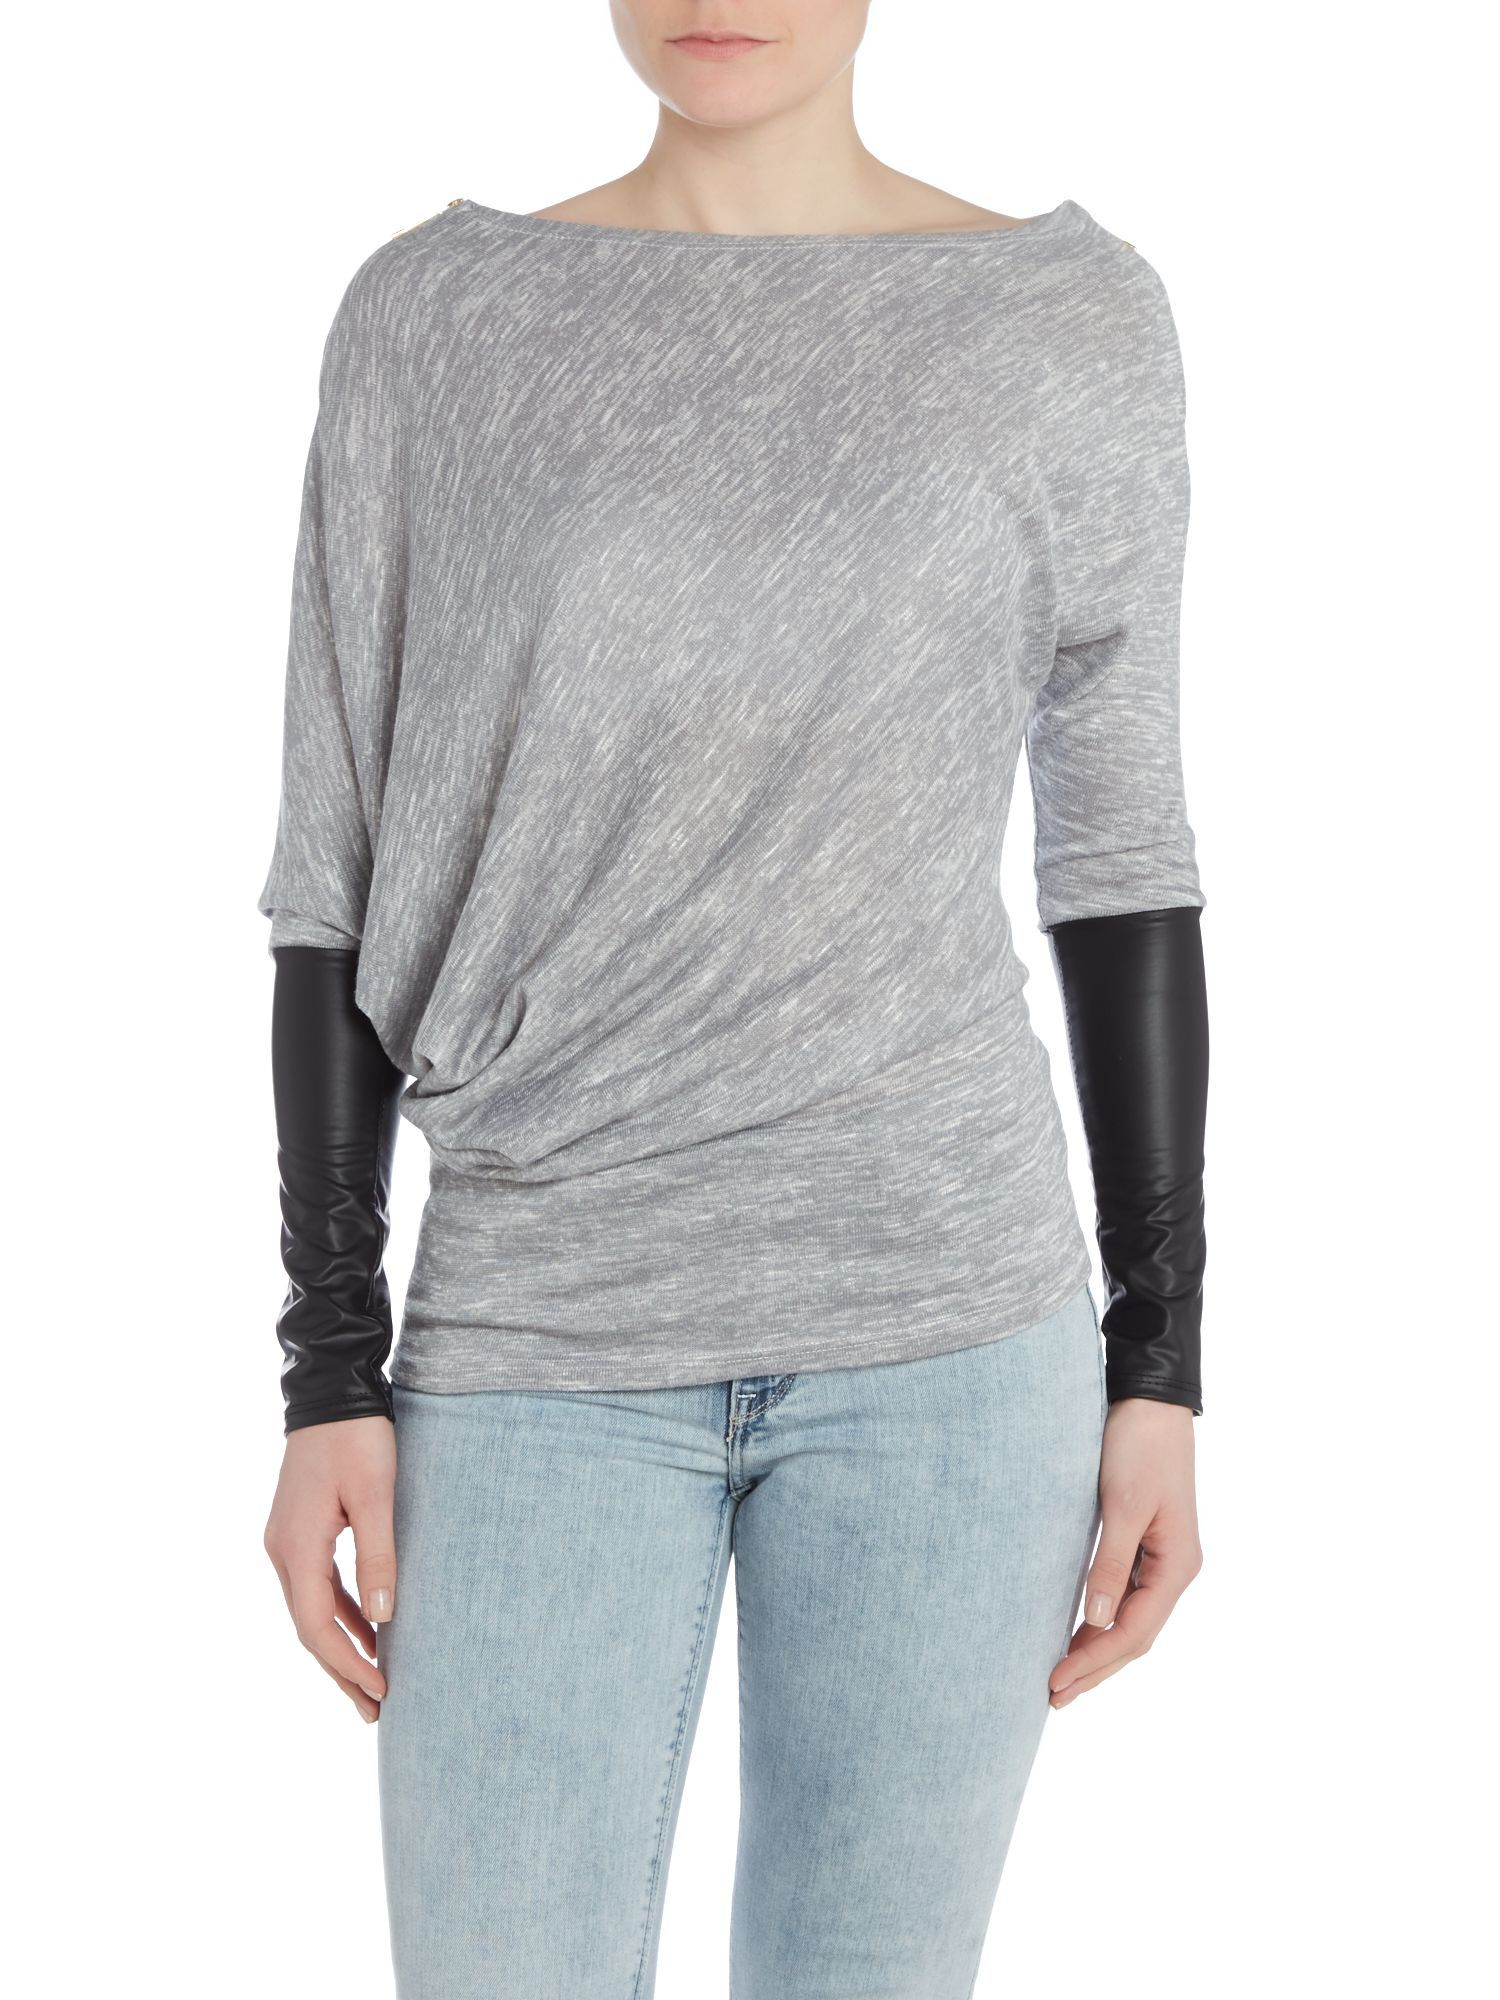 Assymetric neckline Pu sleeved top